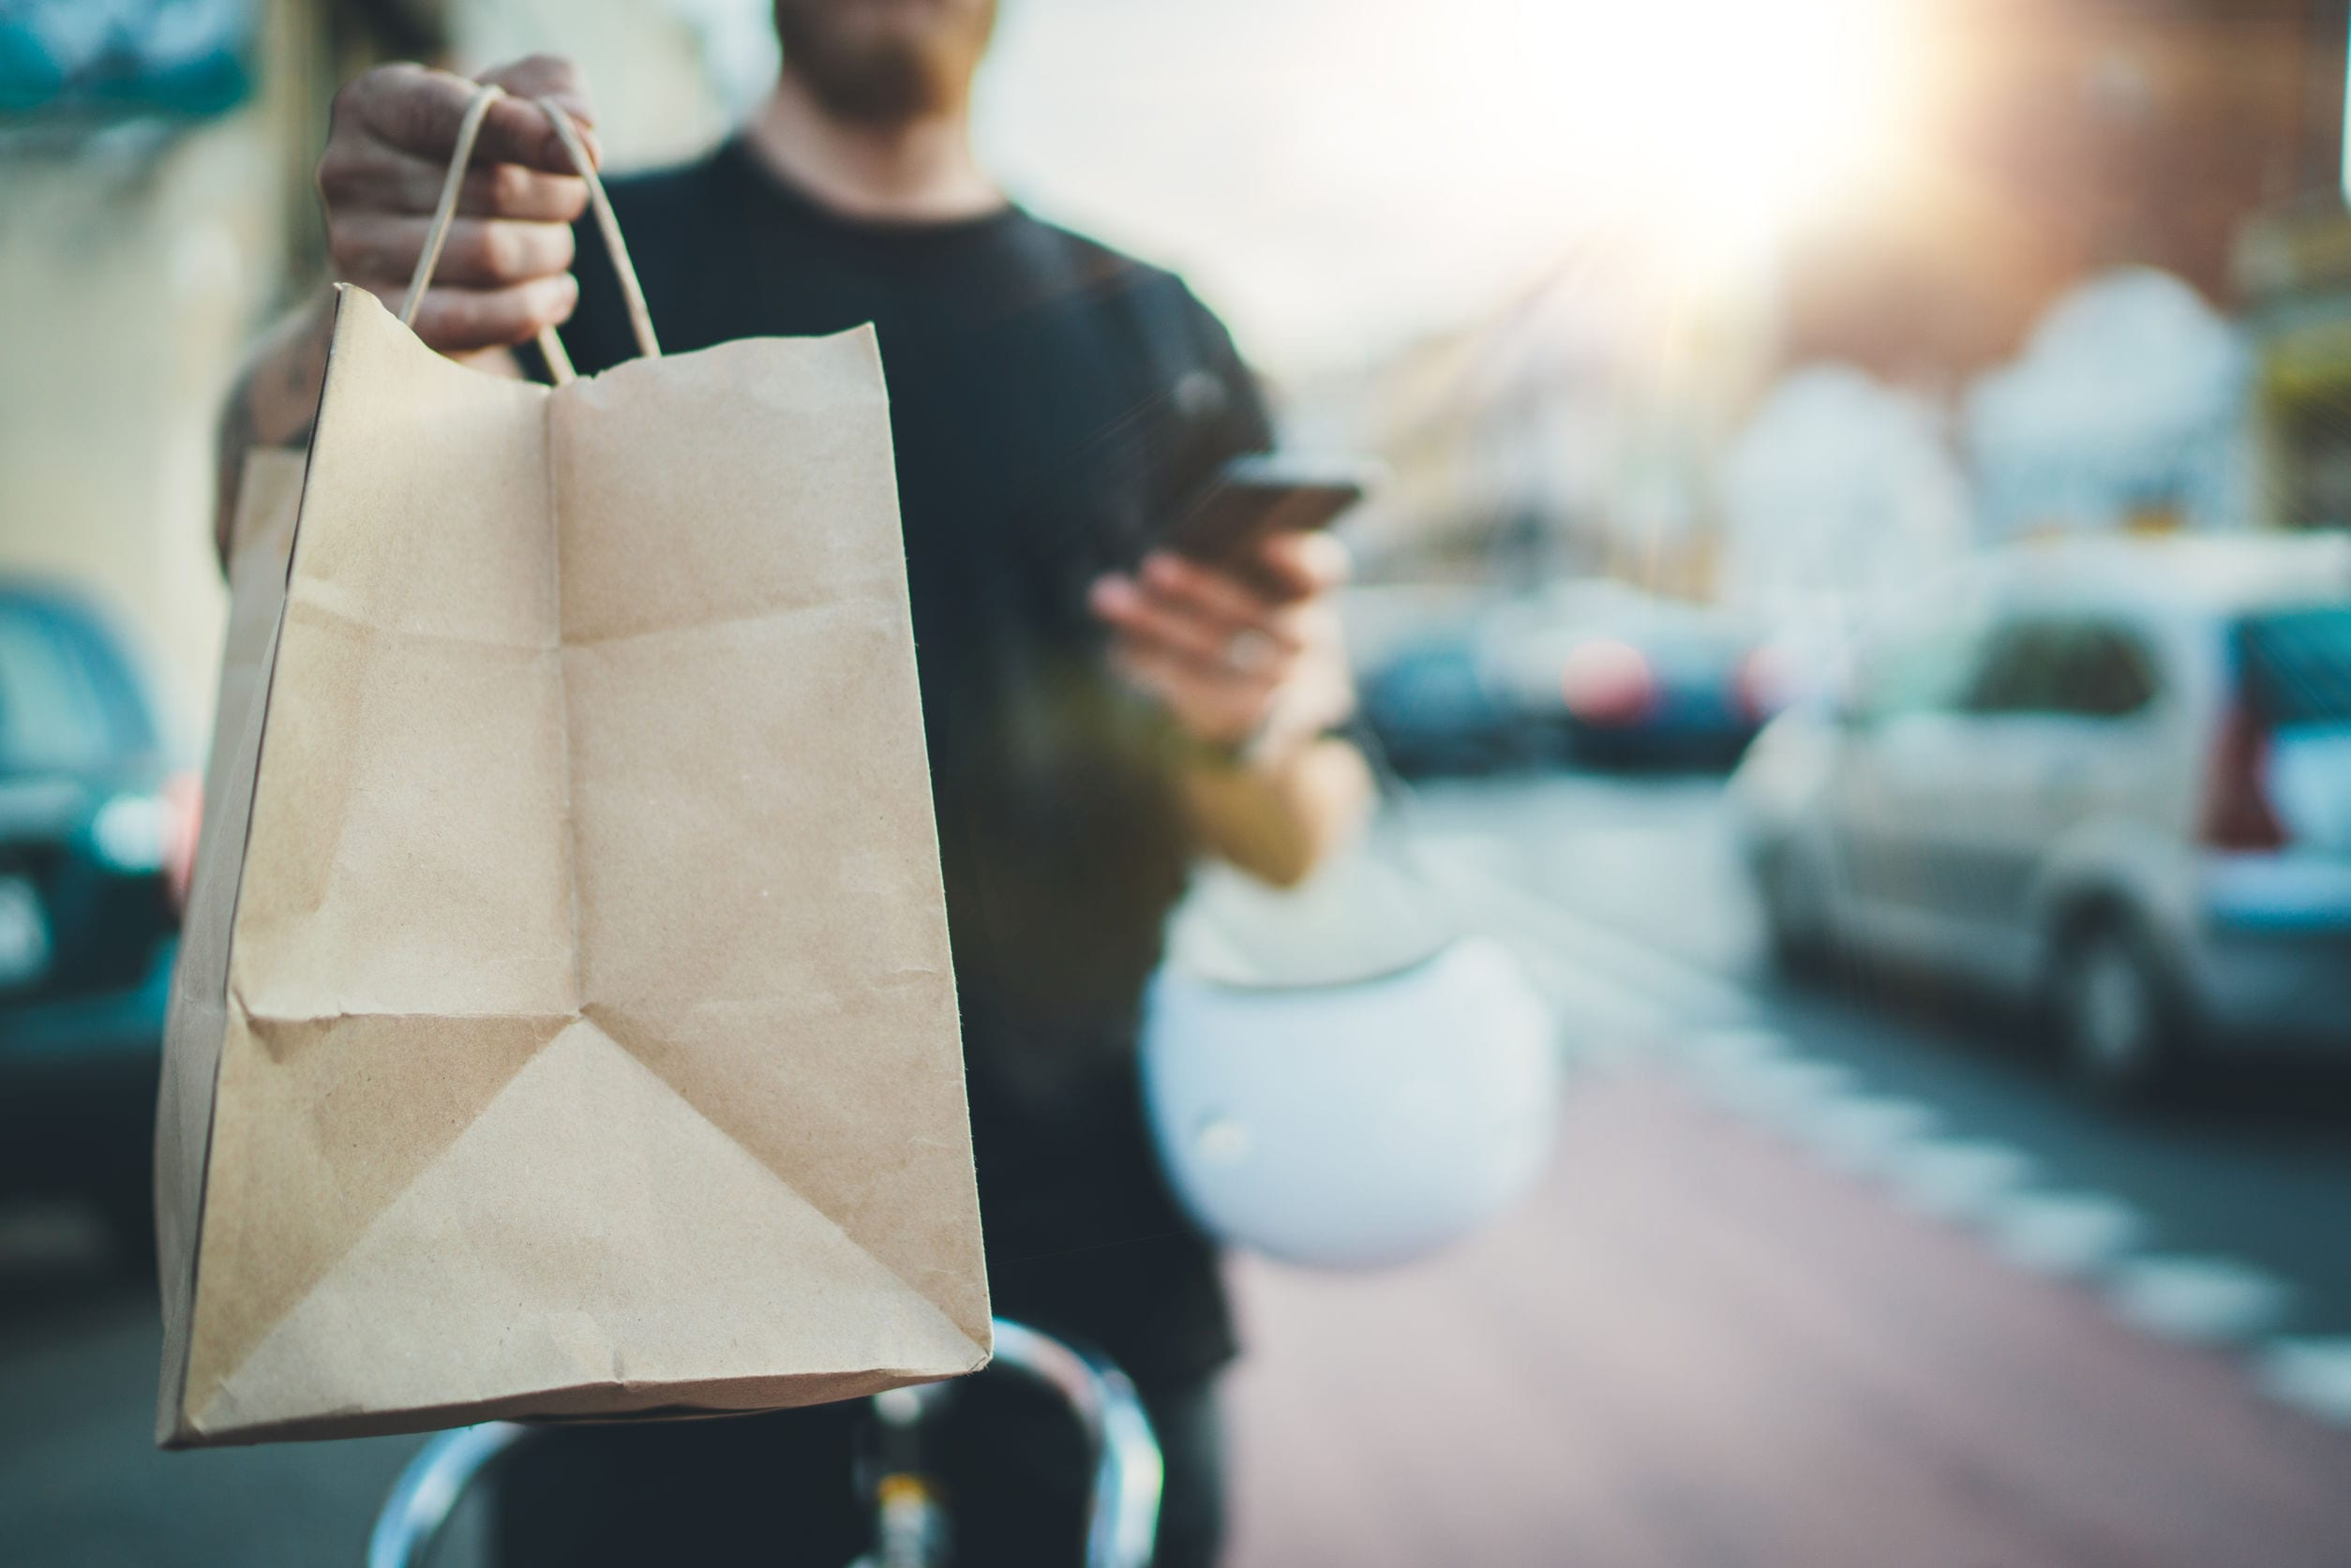 Best Credit Cards For Food Delivery, Groceries And Streaming (2020)